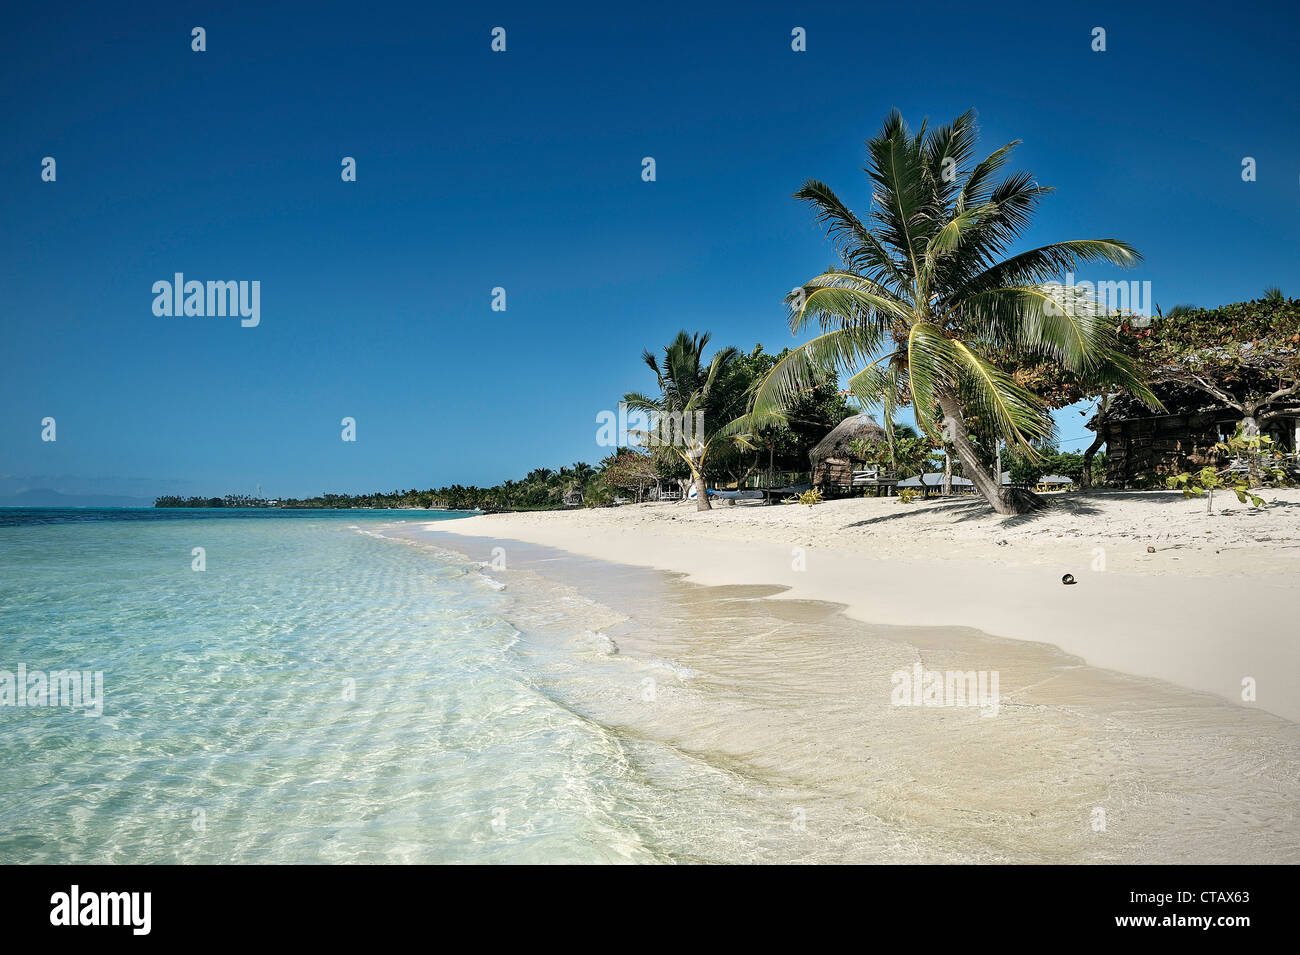 white sandy beach with clear water, stunning southern pacific beach, Savaii, Samoa - Stock Image